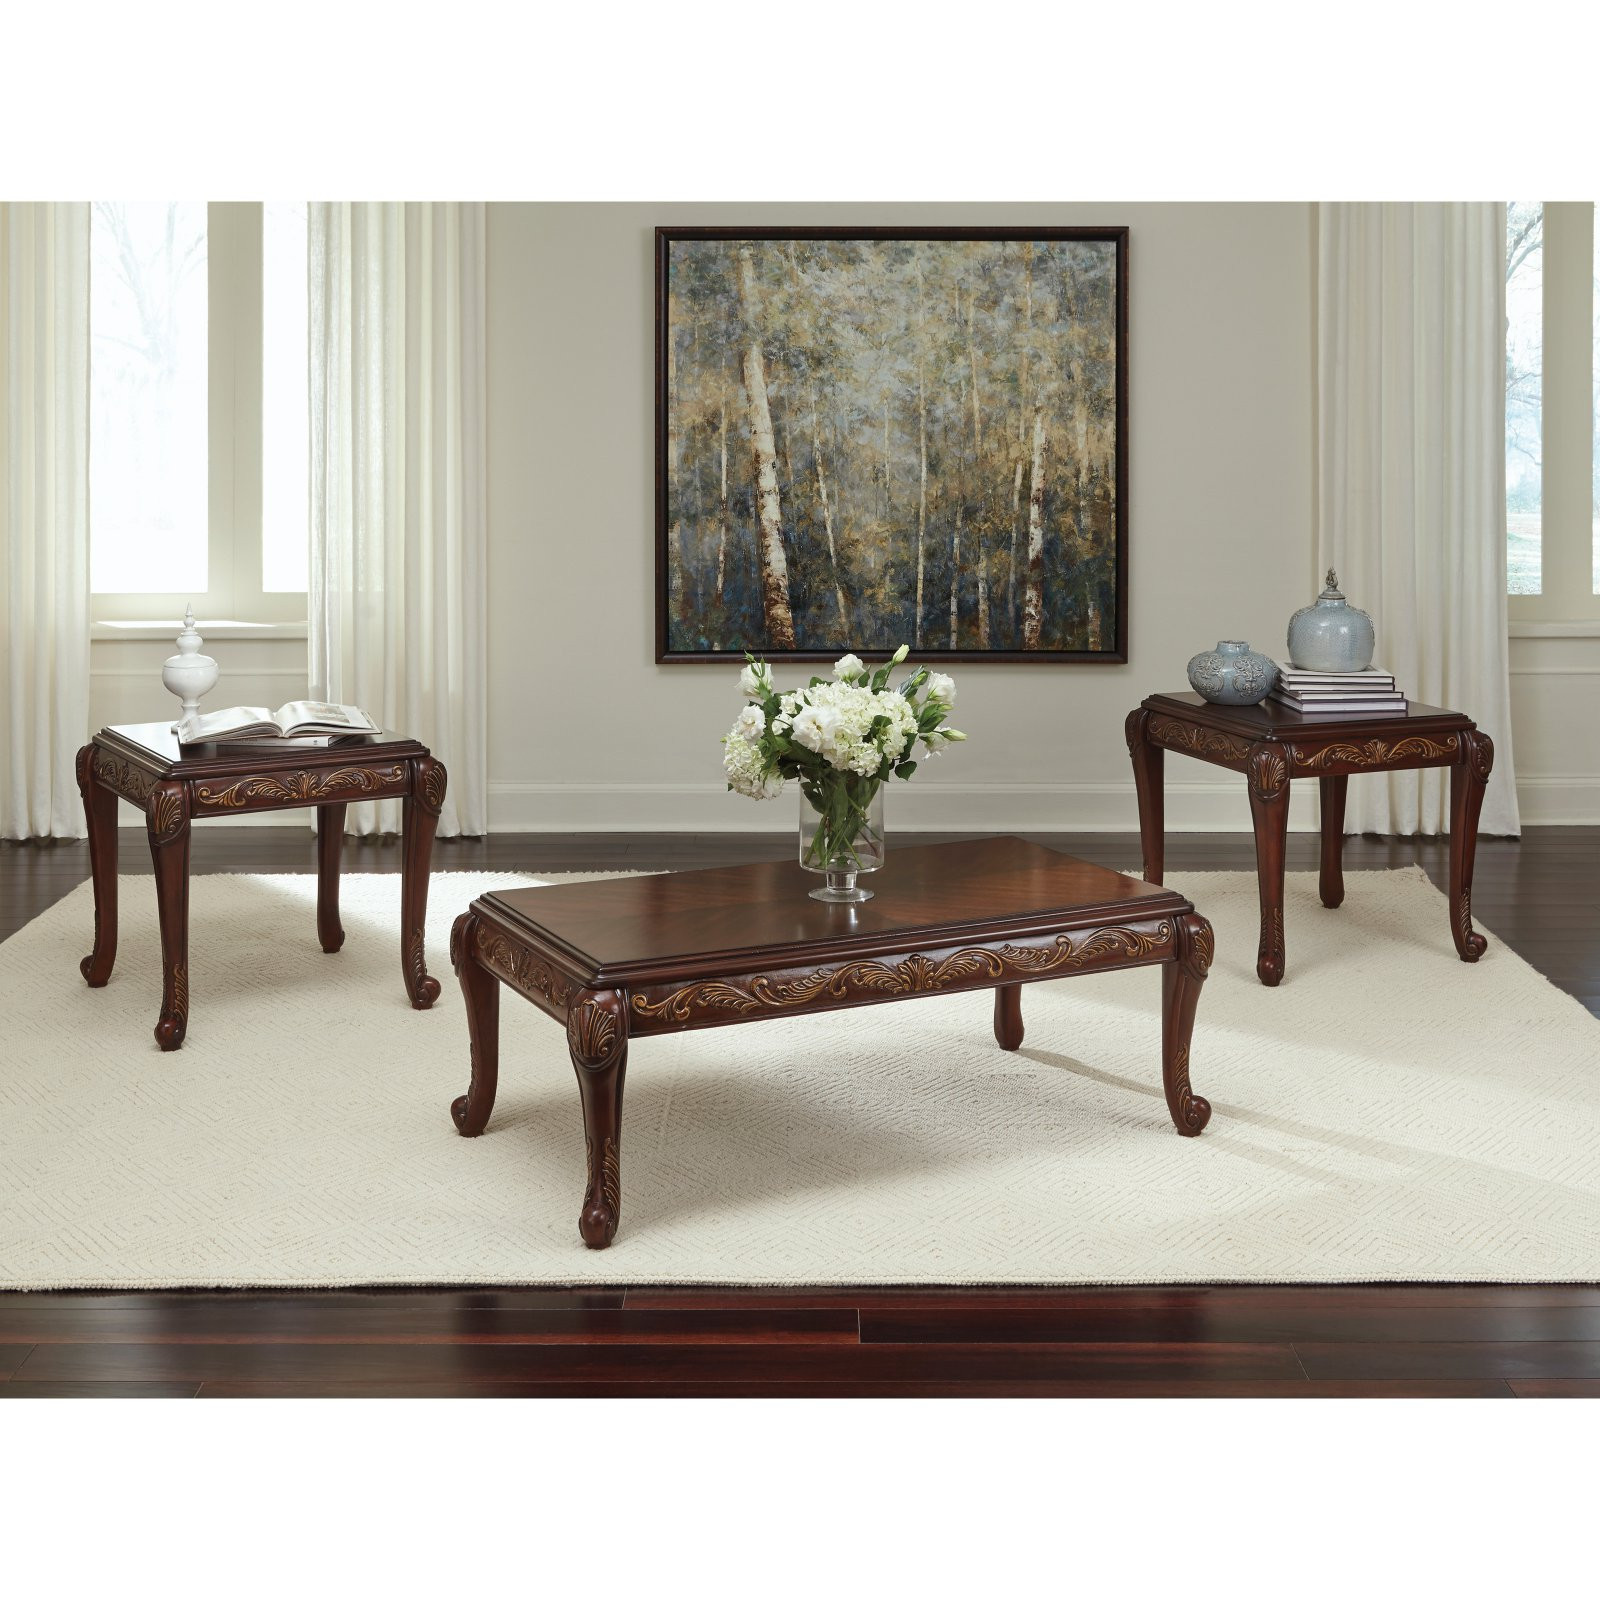 Walmart Living Room Table Sets  Signature Design by Ashley Florrilyn 3 Piece Coffee Table